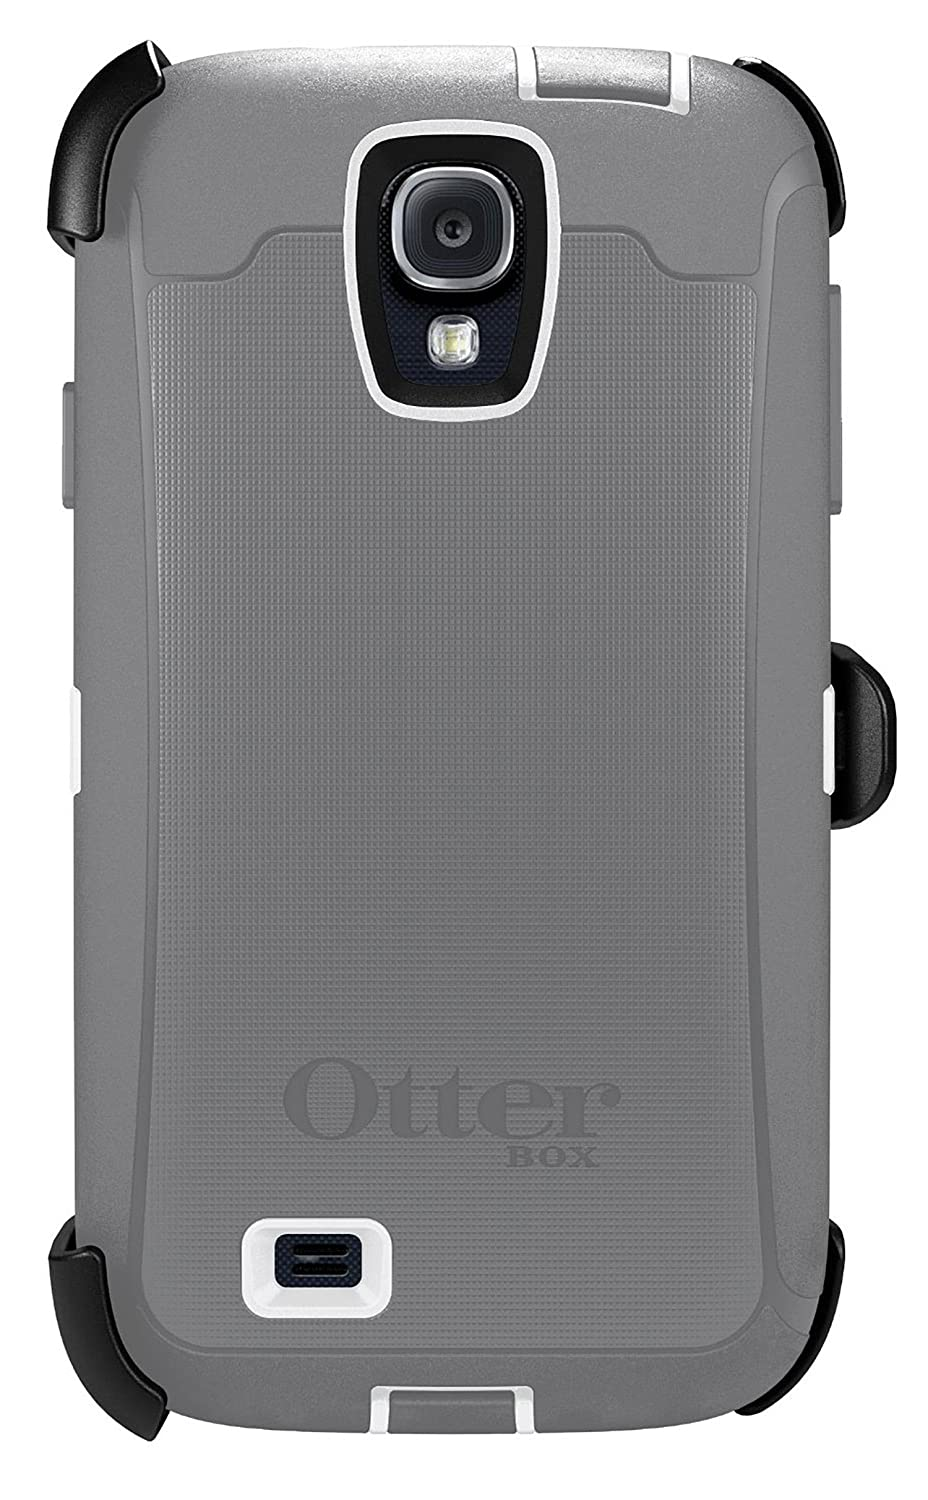 new style 1d4f3 c6015 OtterBox 77-27437 'Defender Series' Protective Case for Samsung Galaxy S4  Phone - Glacier (Retail Packaging from OtterBox)